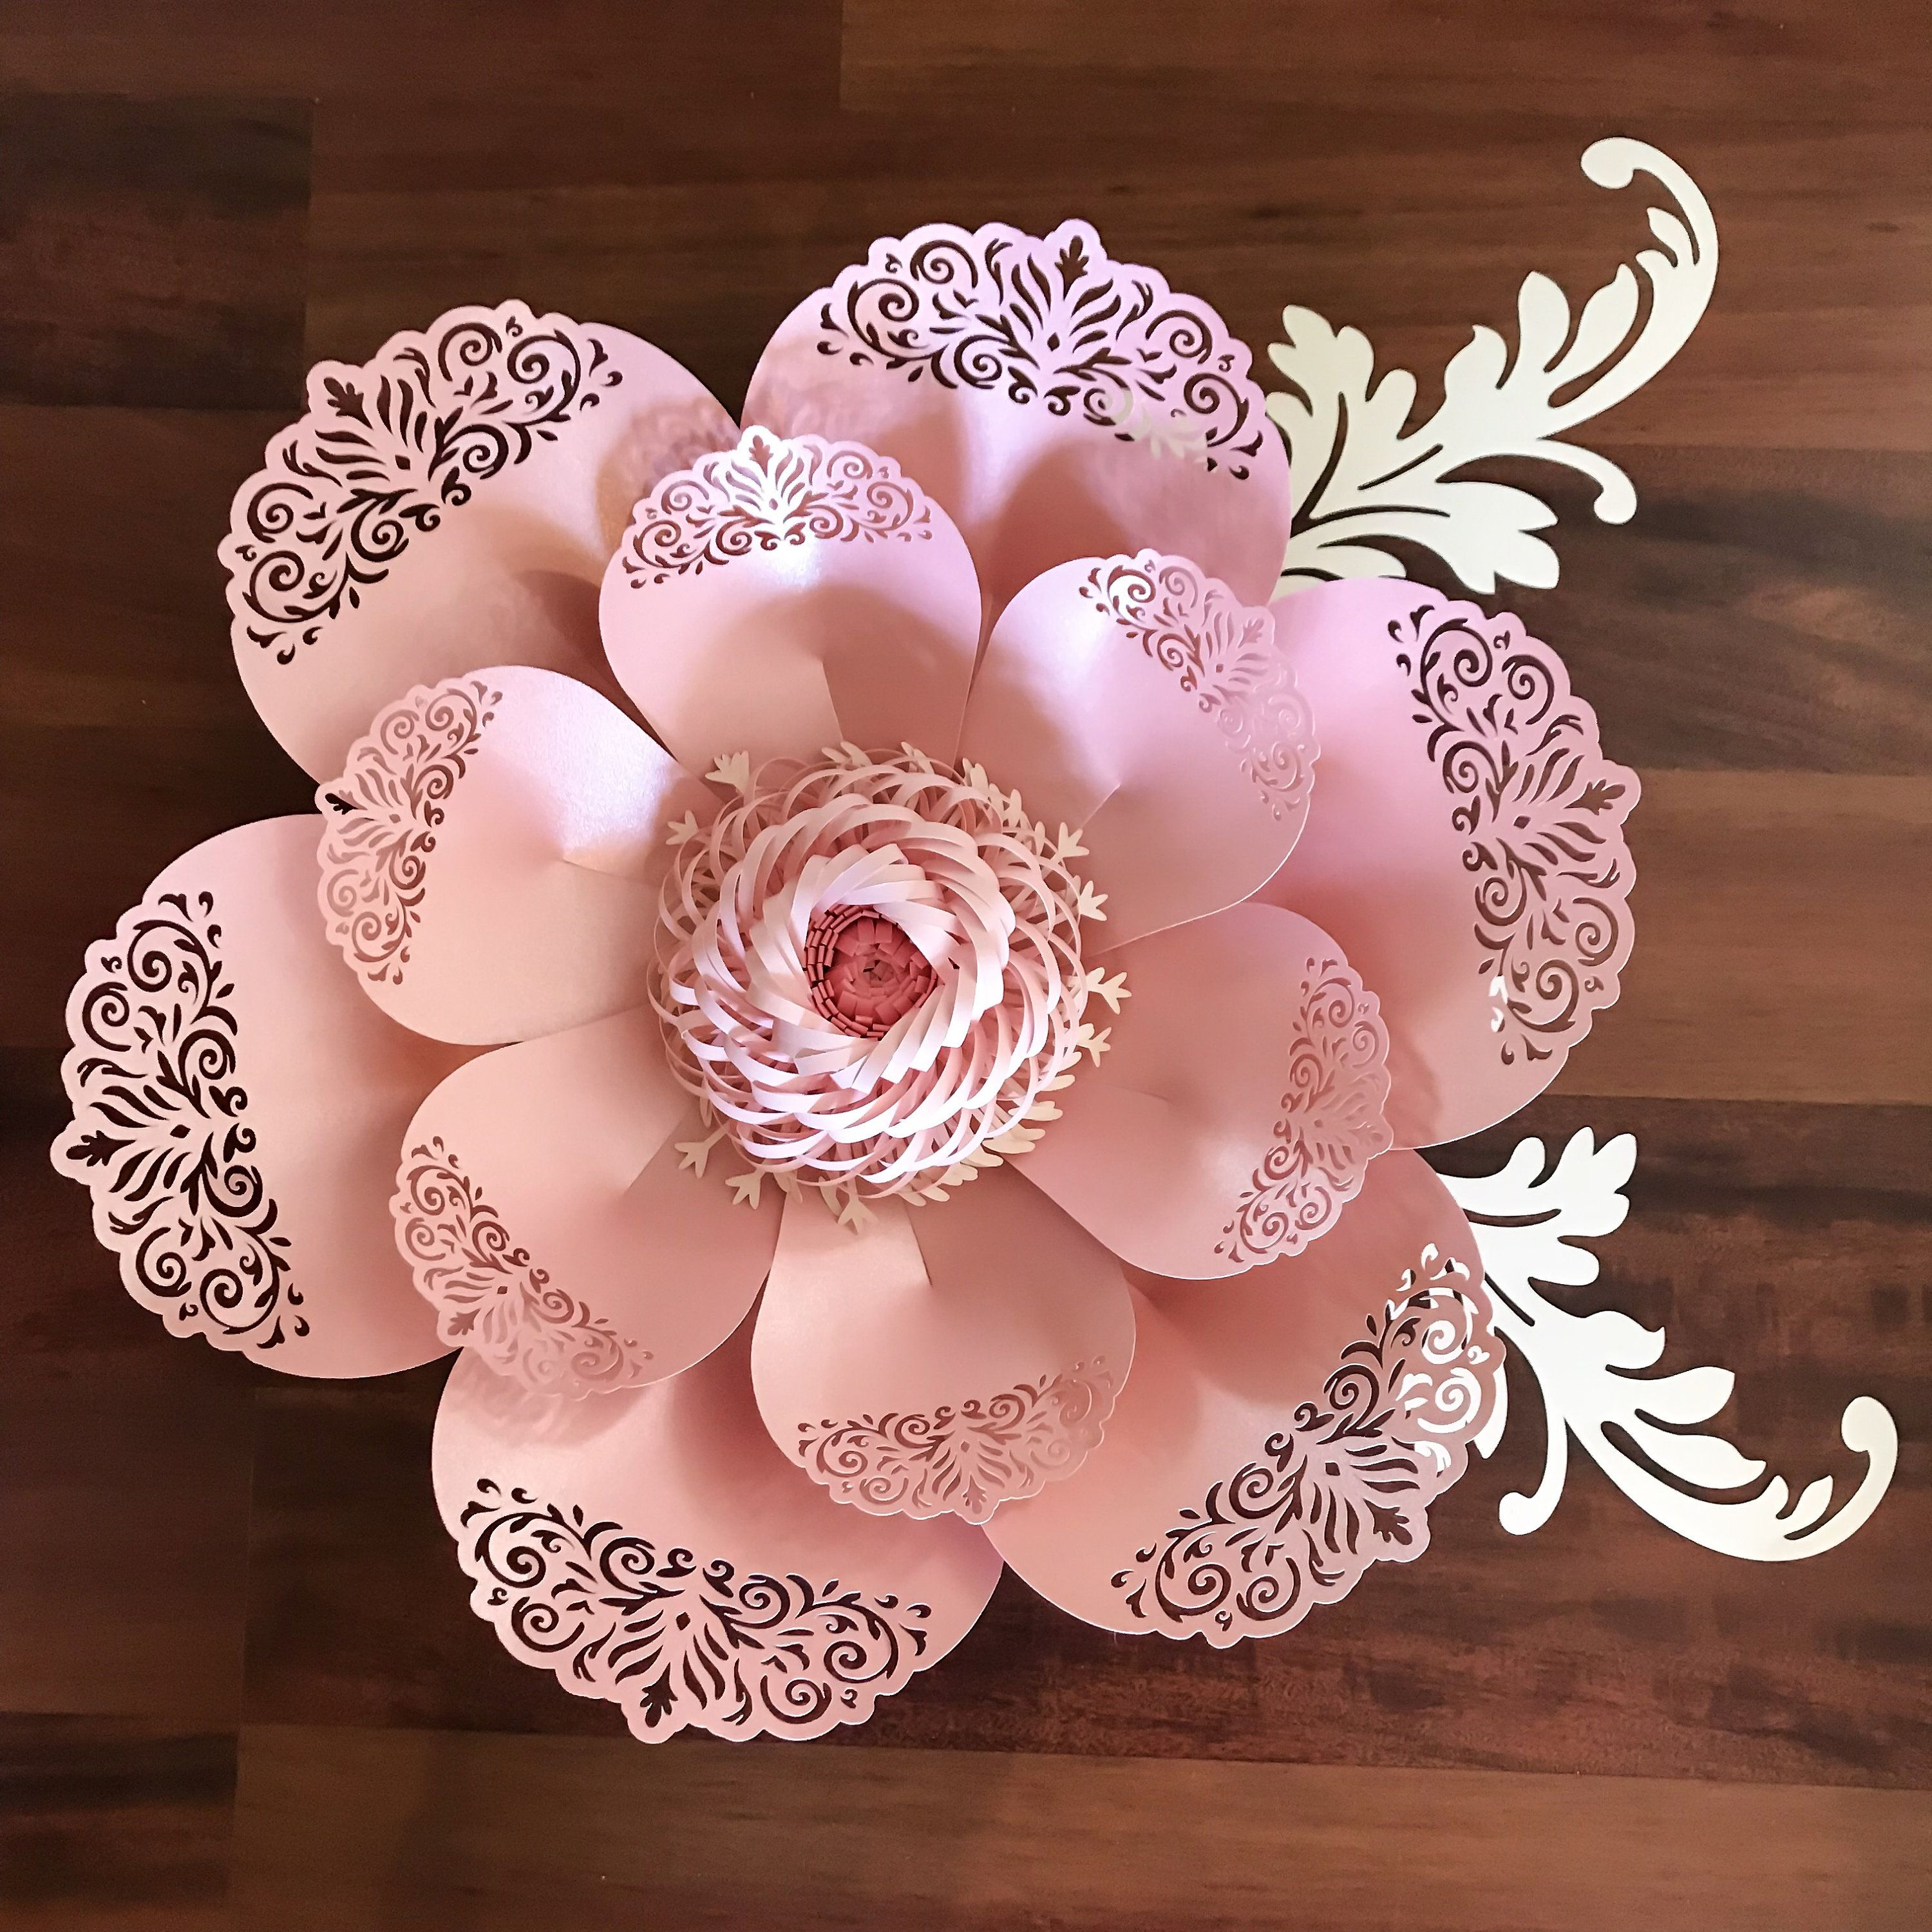 Svg lace paper flower template 8 for cutting machine to make diy paper flowers svg lace petal8 flower template fringe stripe fluffy center included original design cricut and silhouette ready by thecraftysagannie on mightylinksfo